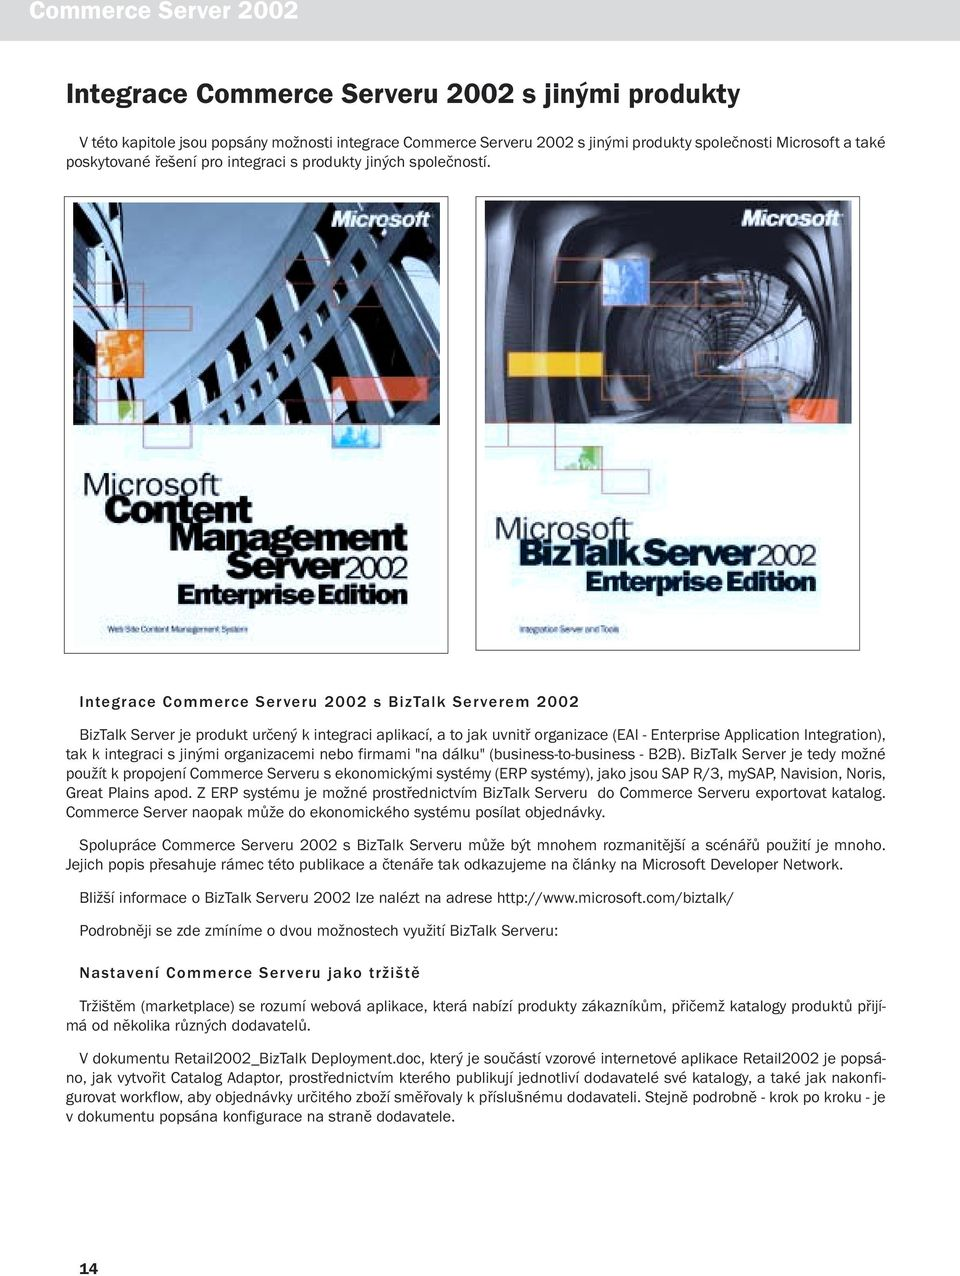 Integrace Commerce Serveru 2002 s BizTalk Serverem 2002 BizTalk Server je produkt určený k integraci aplikací, a to jak uvnitř organizace (EAI - Enterprise Application Integration), tak k integraci s